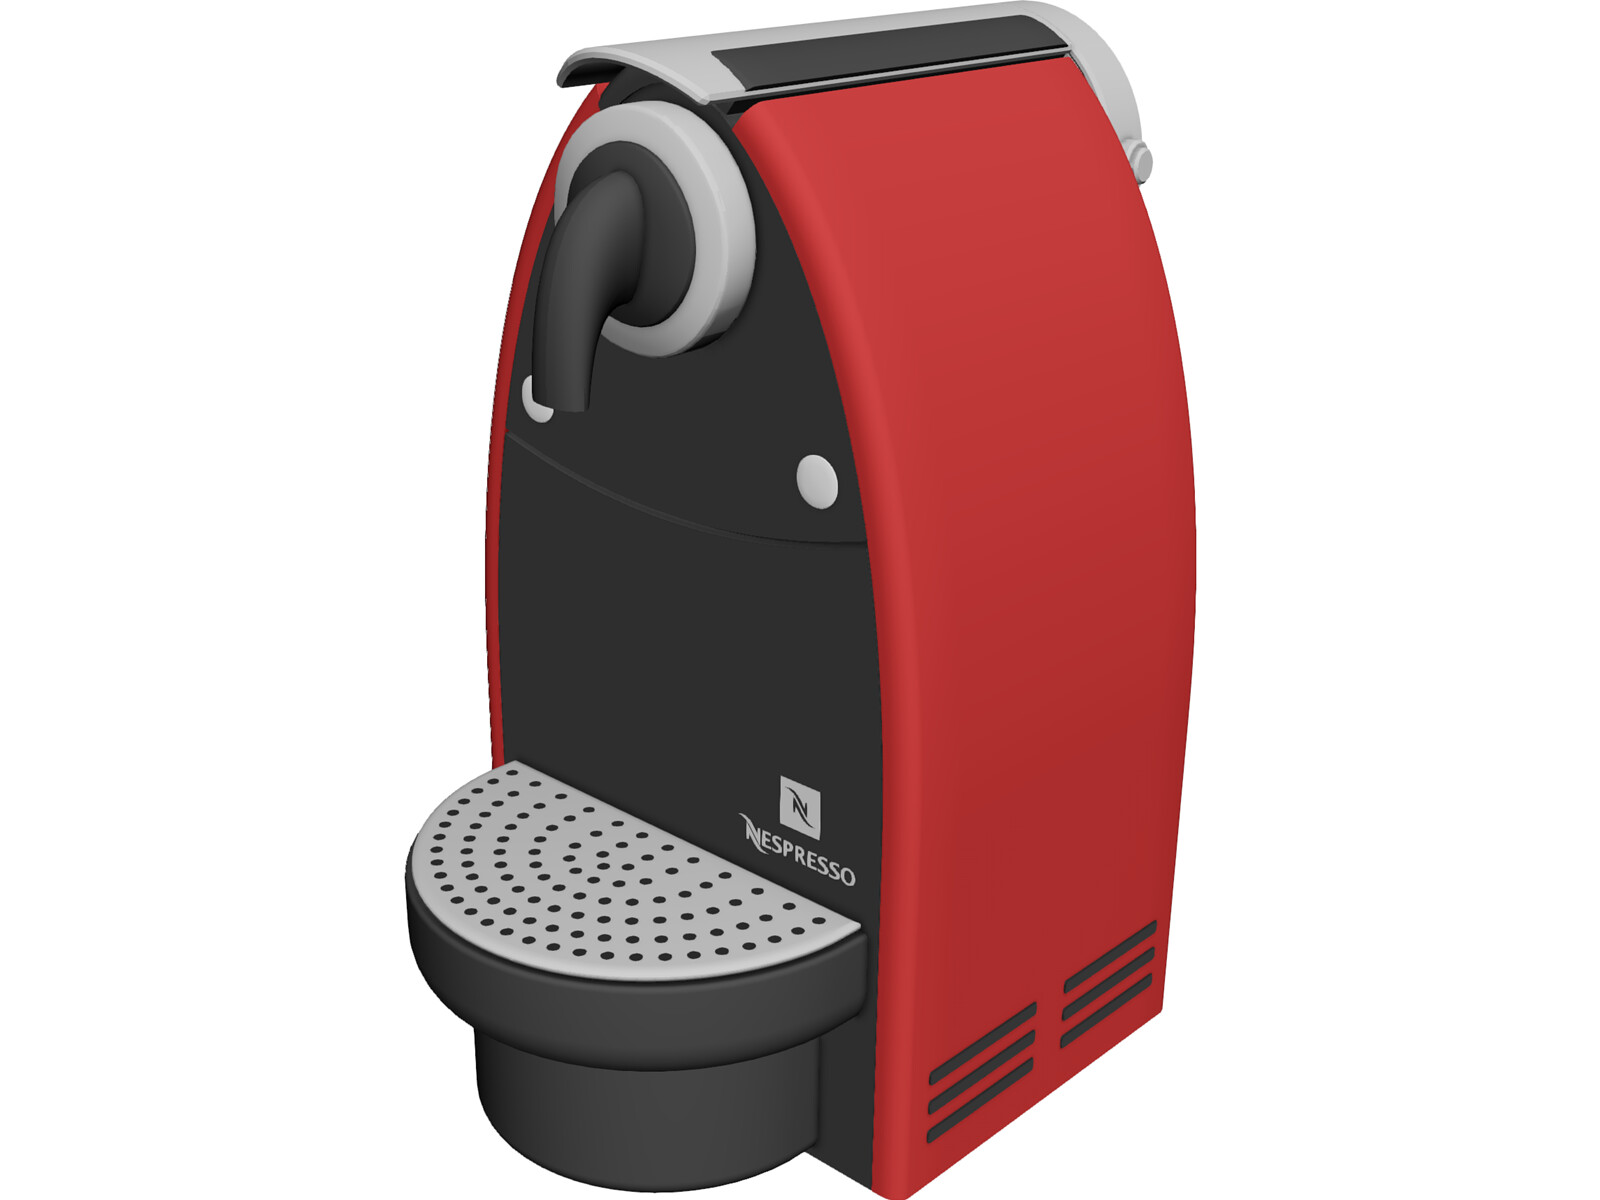 Nespresso Essenza C100 Coffee Machine